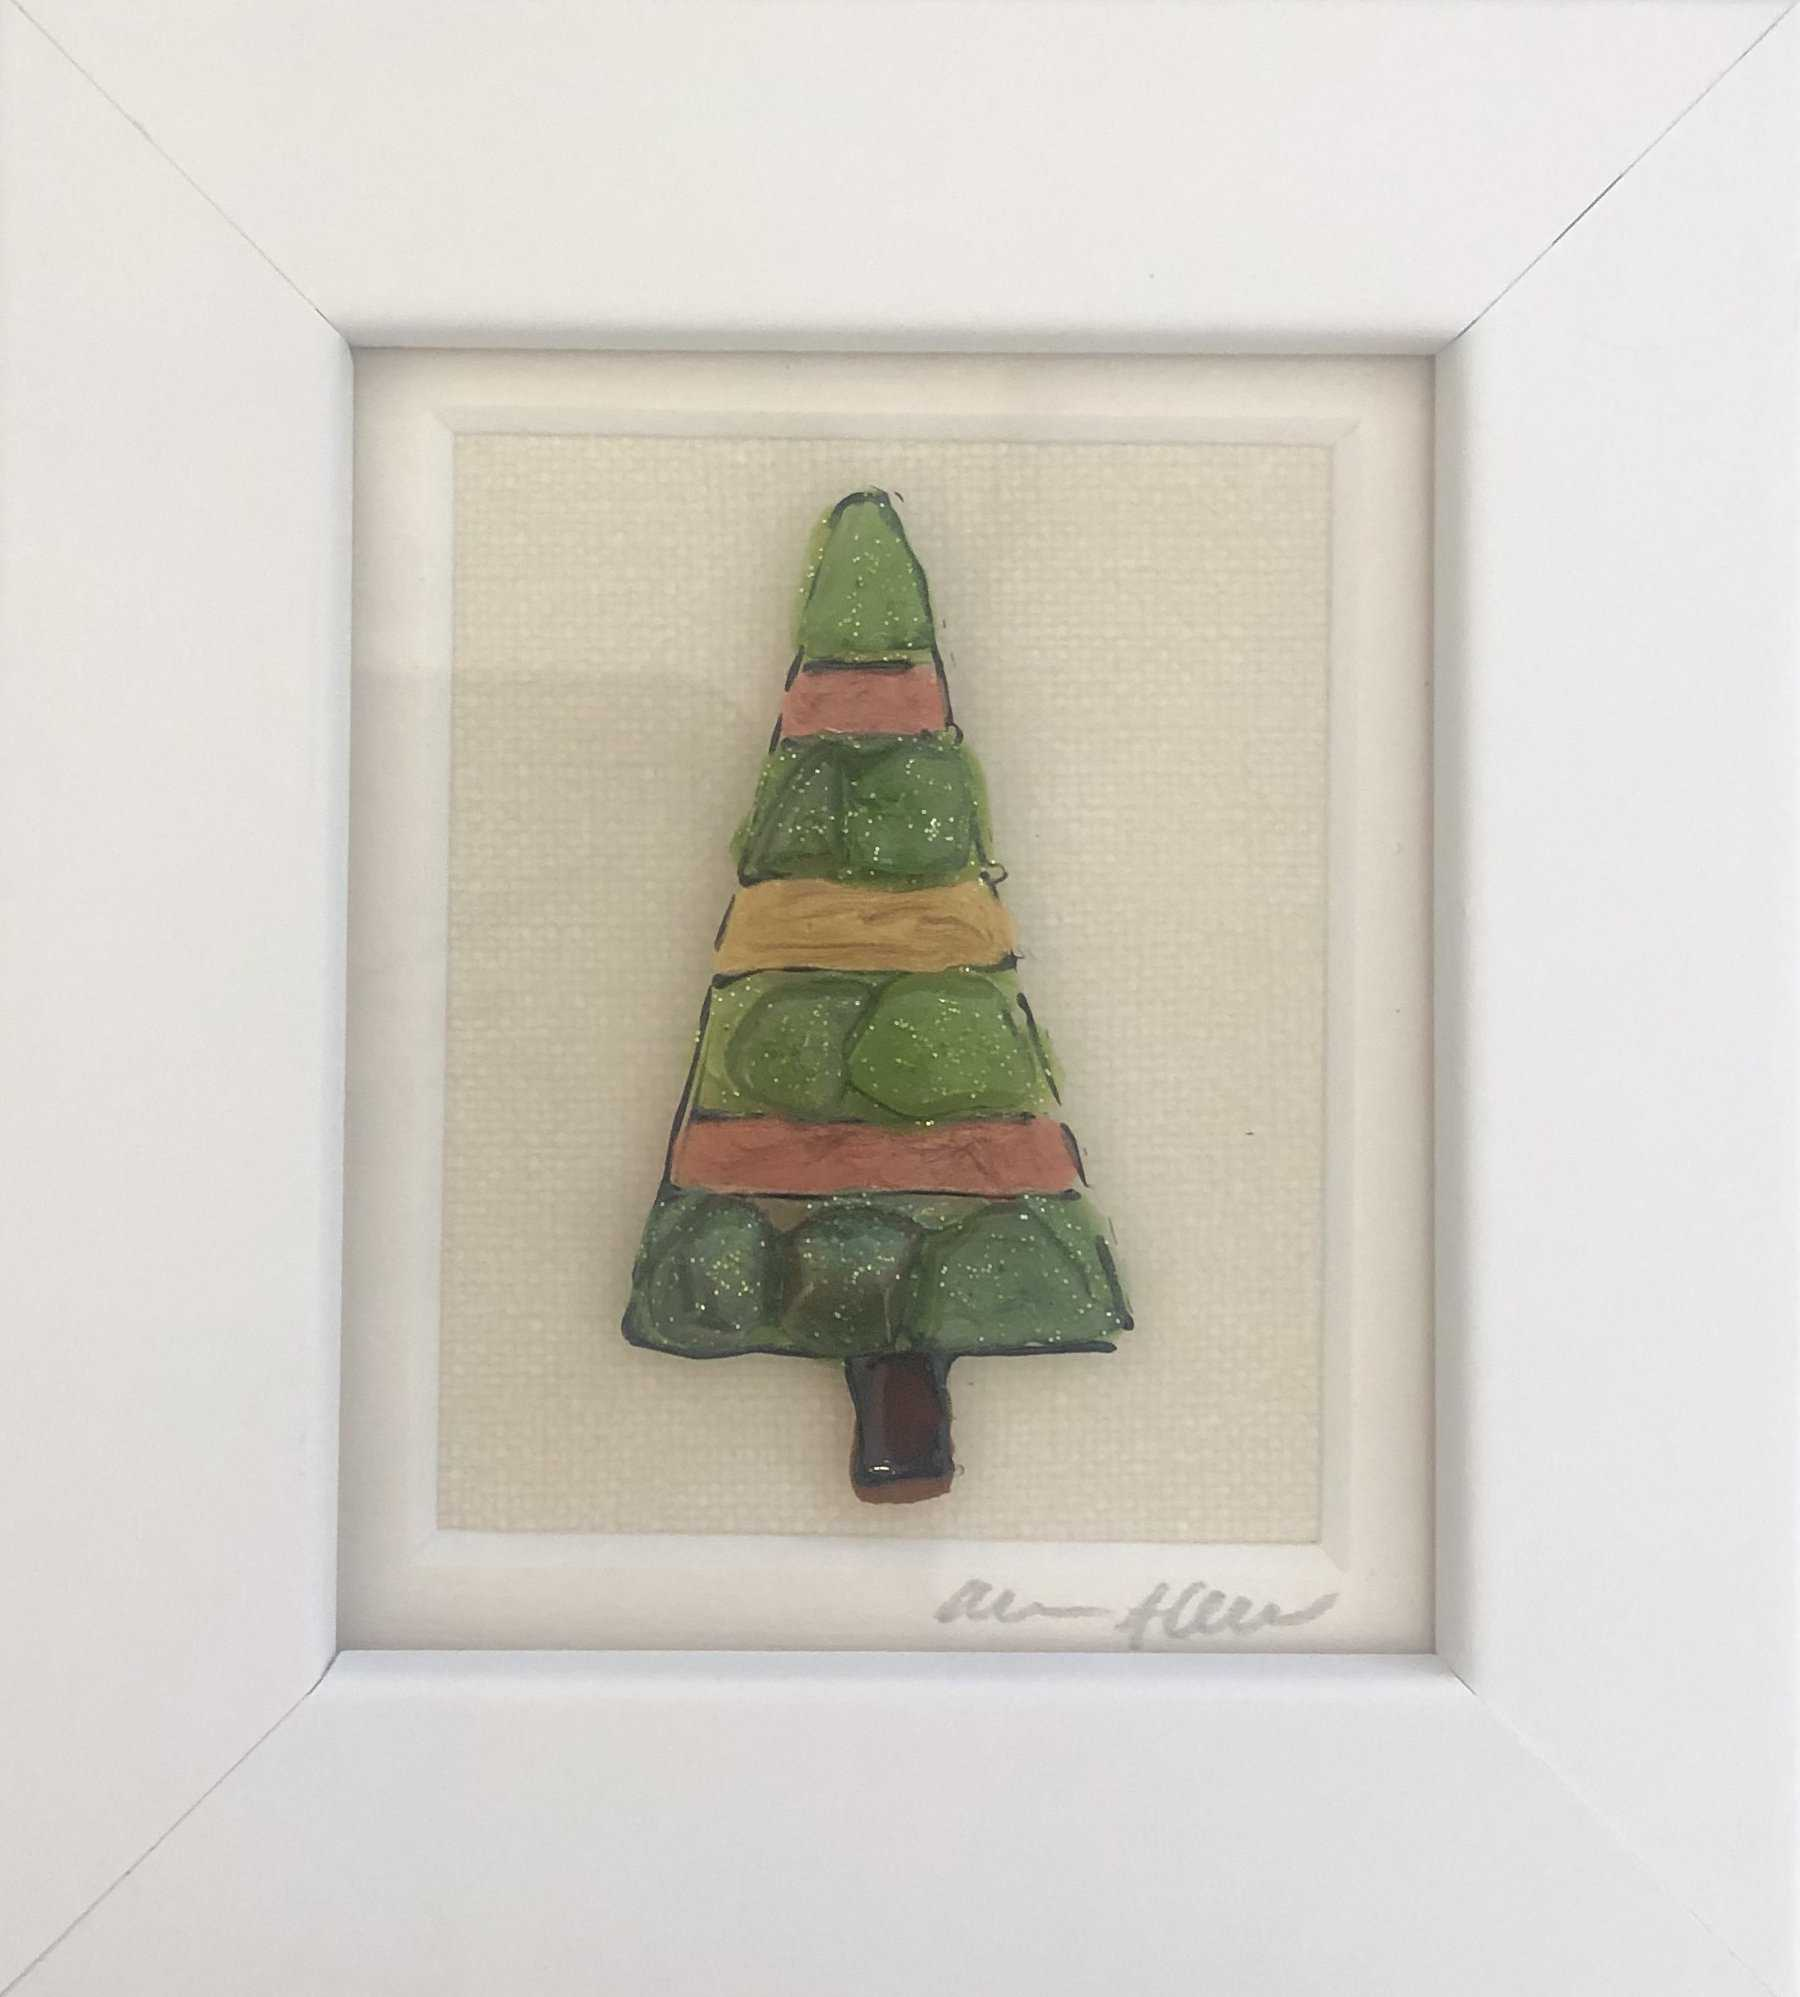 Small Christmas Tree Art Title - Online Art Shop Brighton, UK